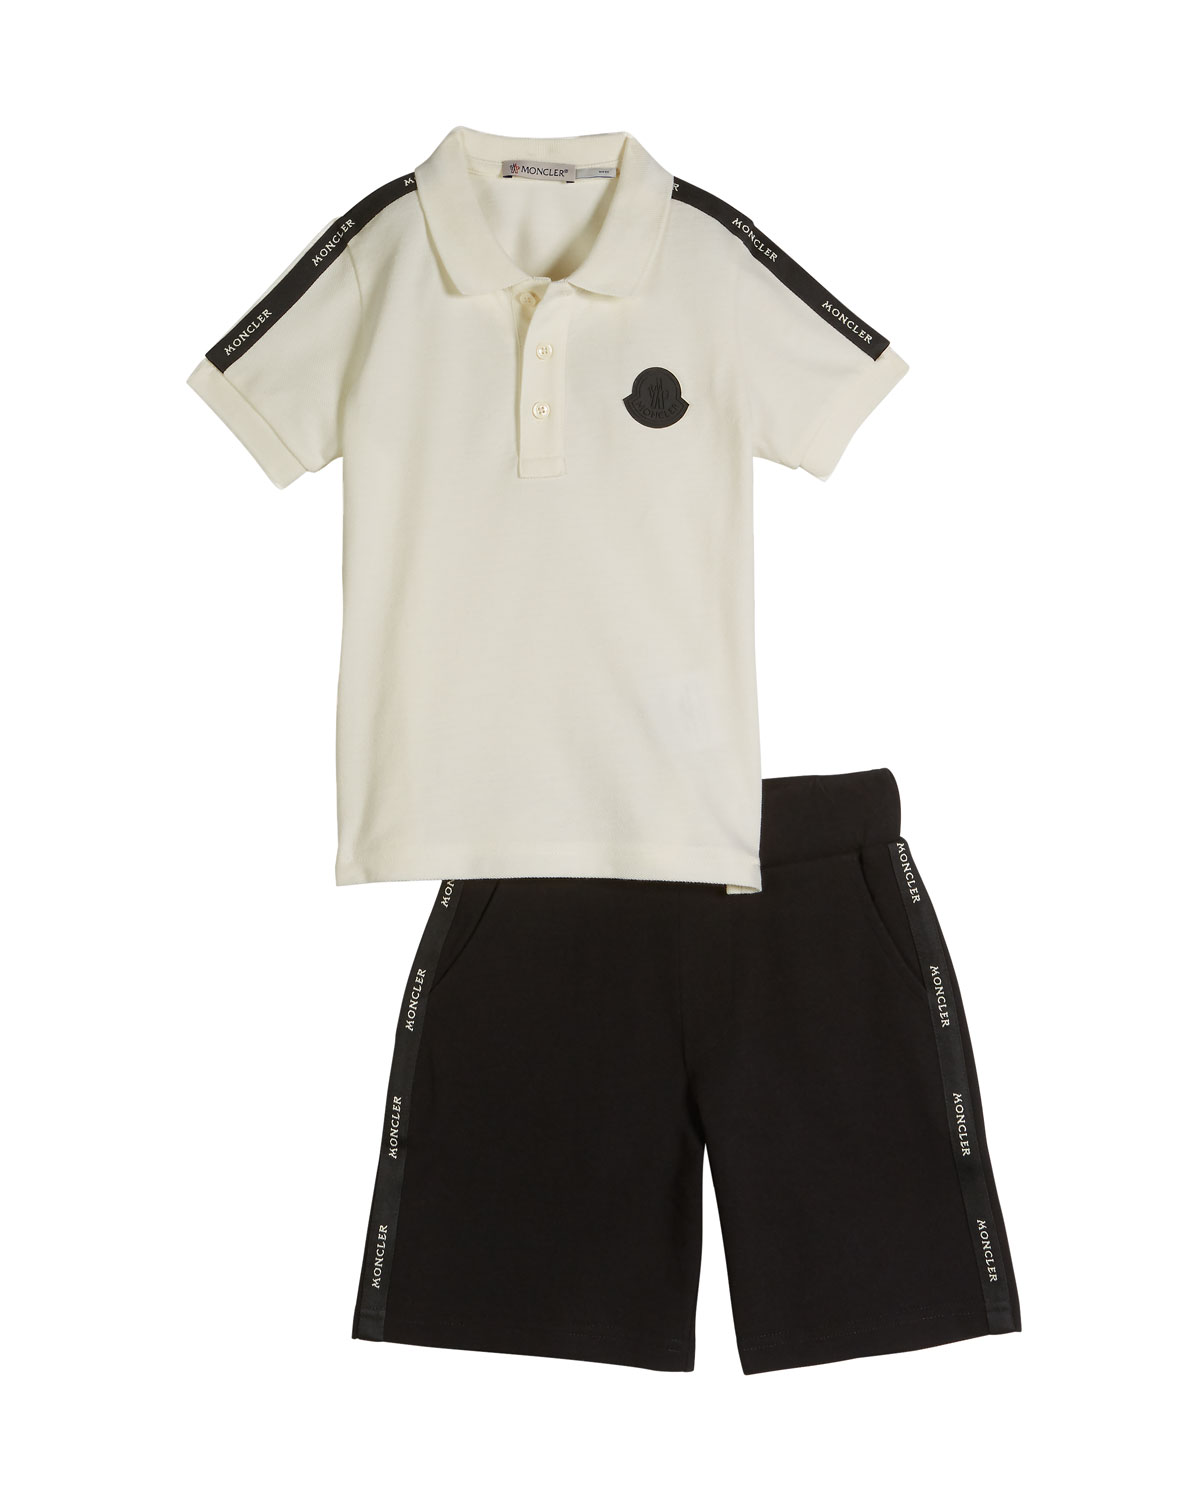 Moncler Logo Taping Polo Shirt W Matching Shorts Size 8 14